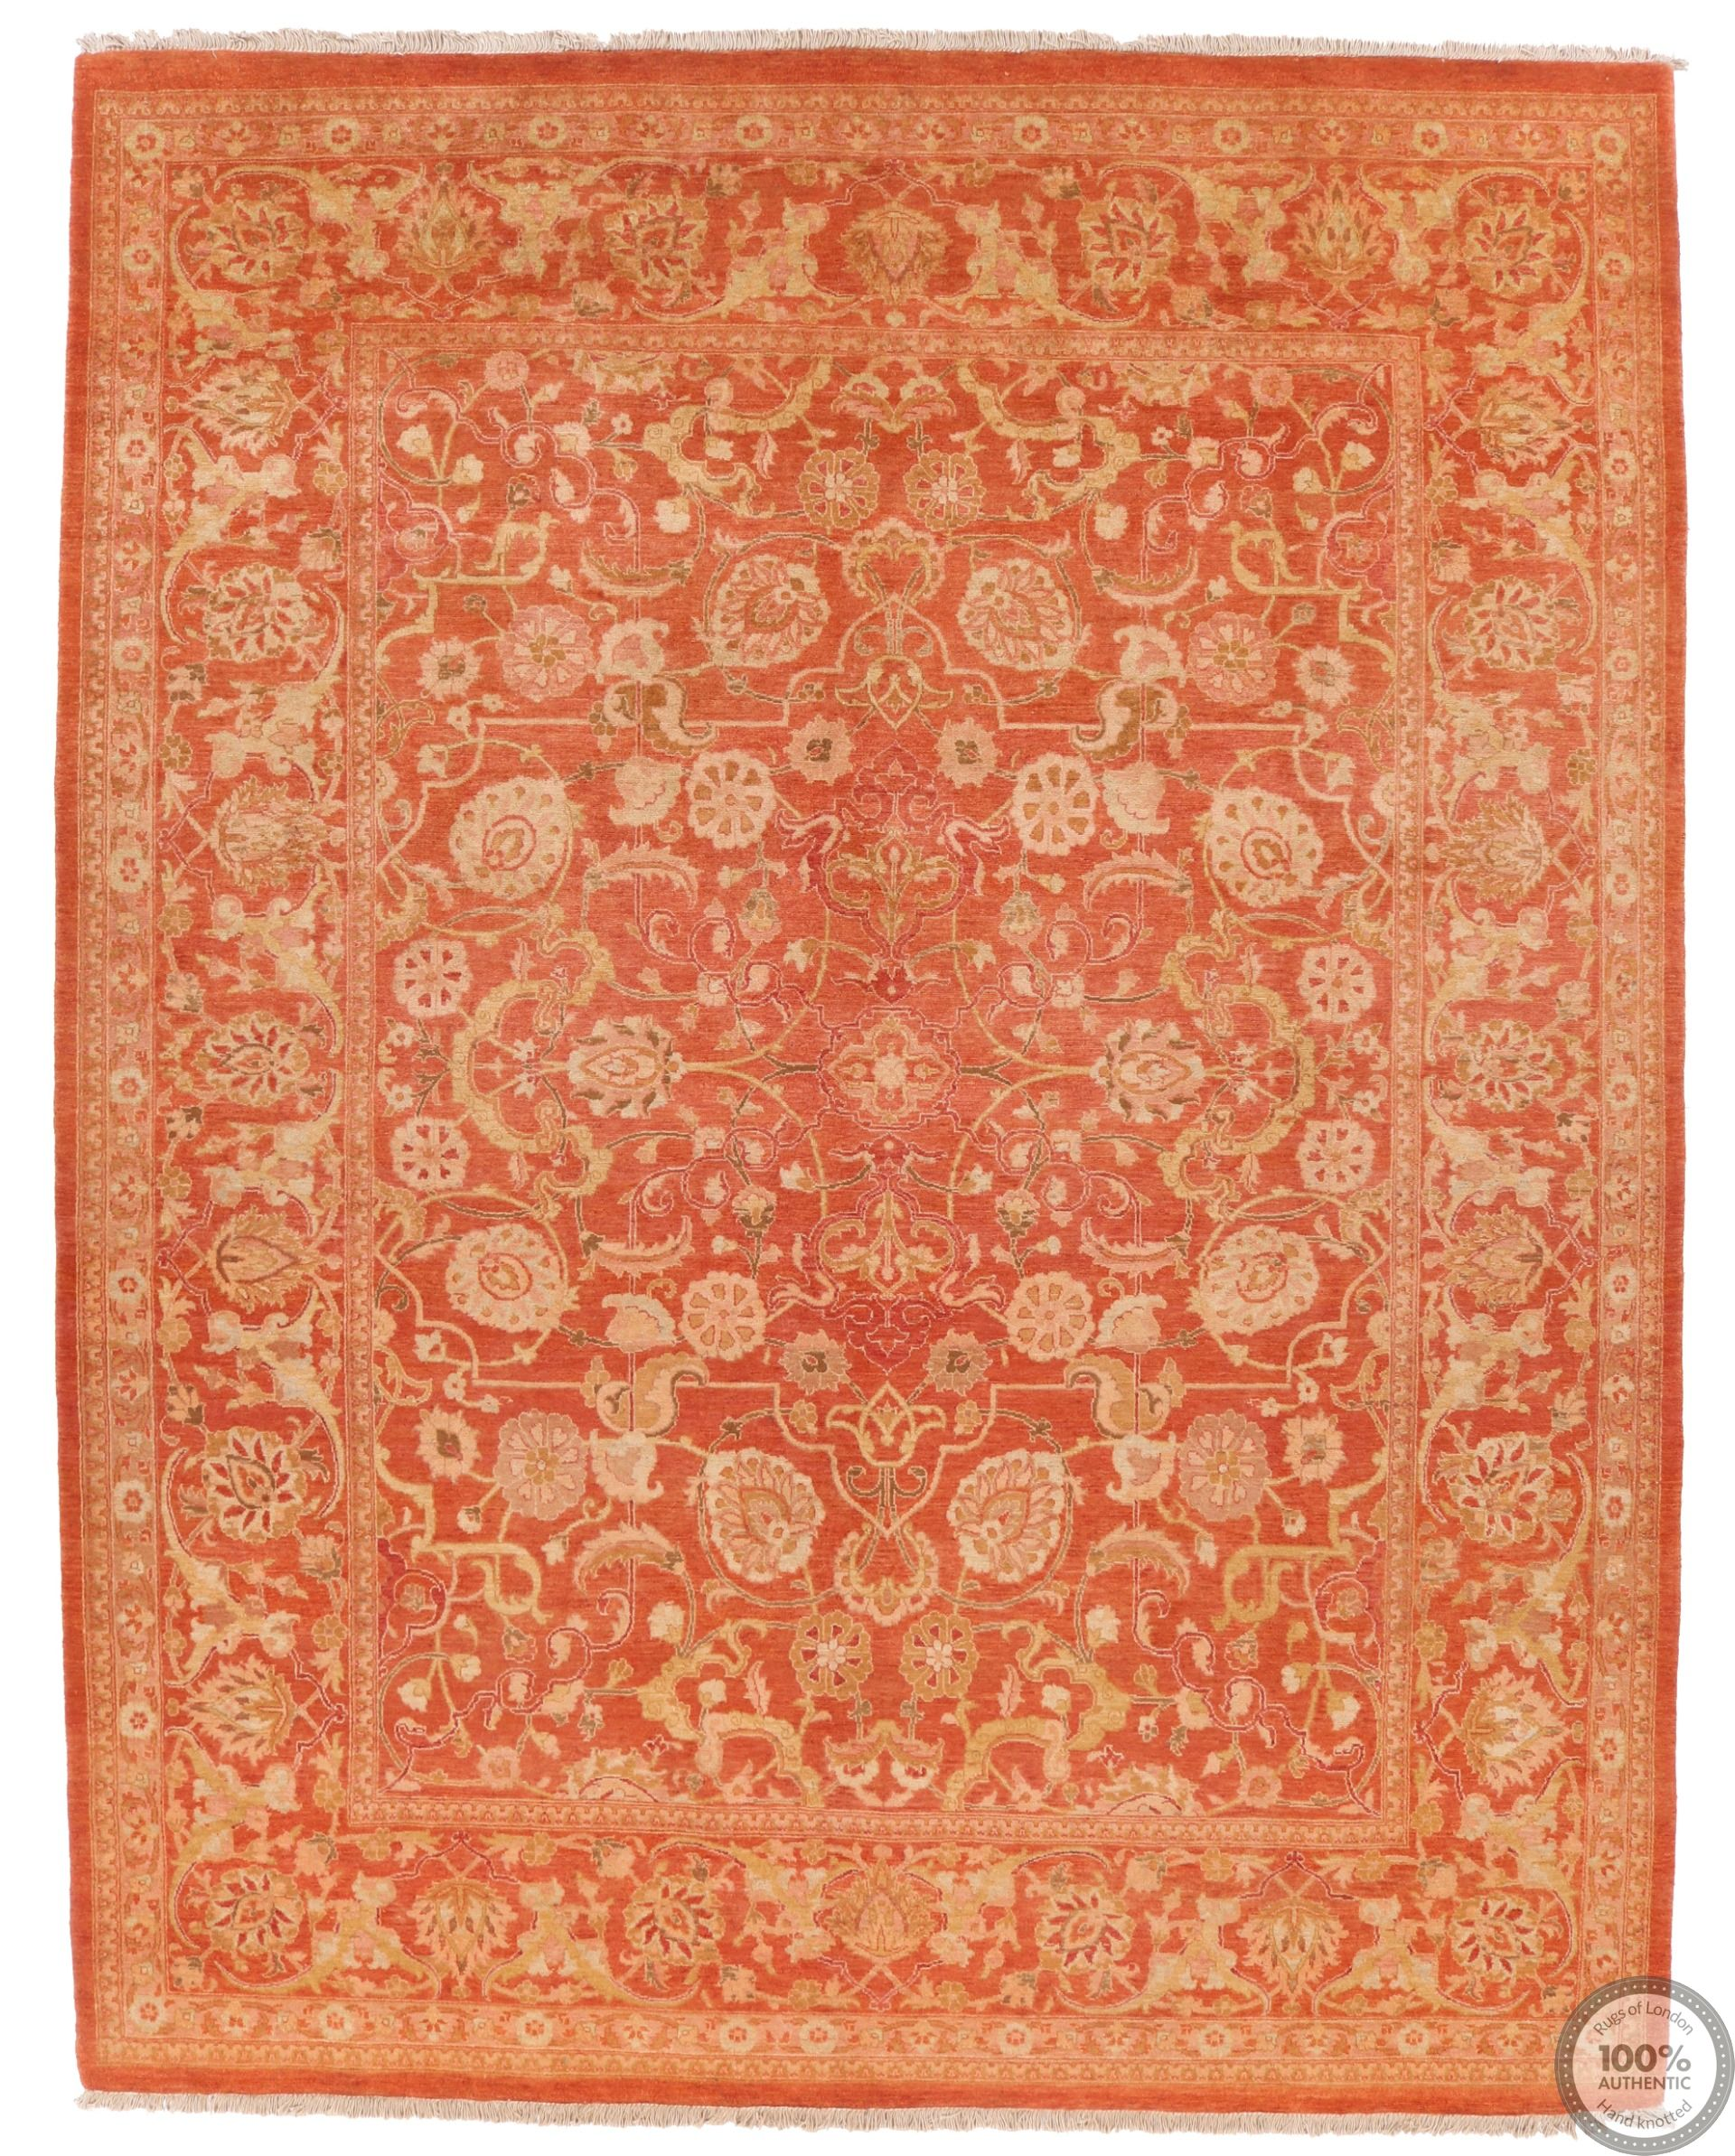 Mohtasham Design - Orange 10 x 7'9